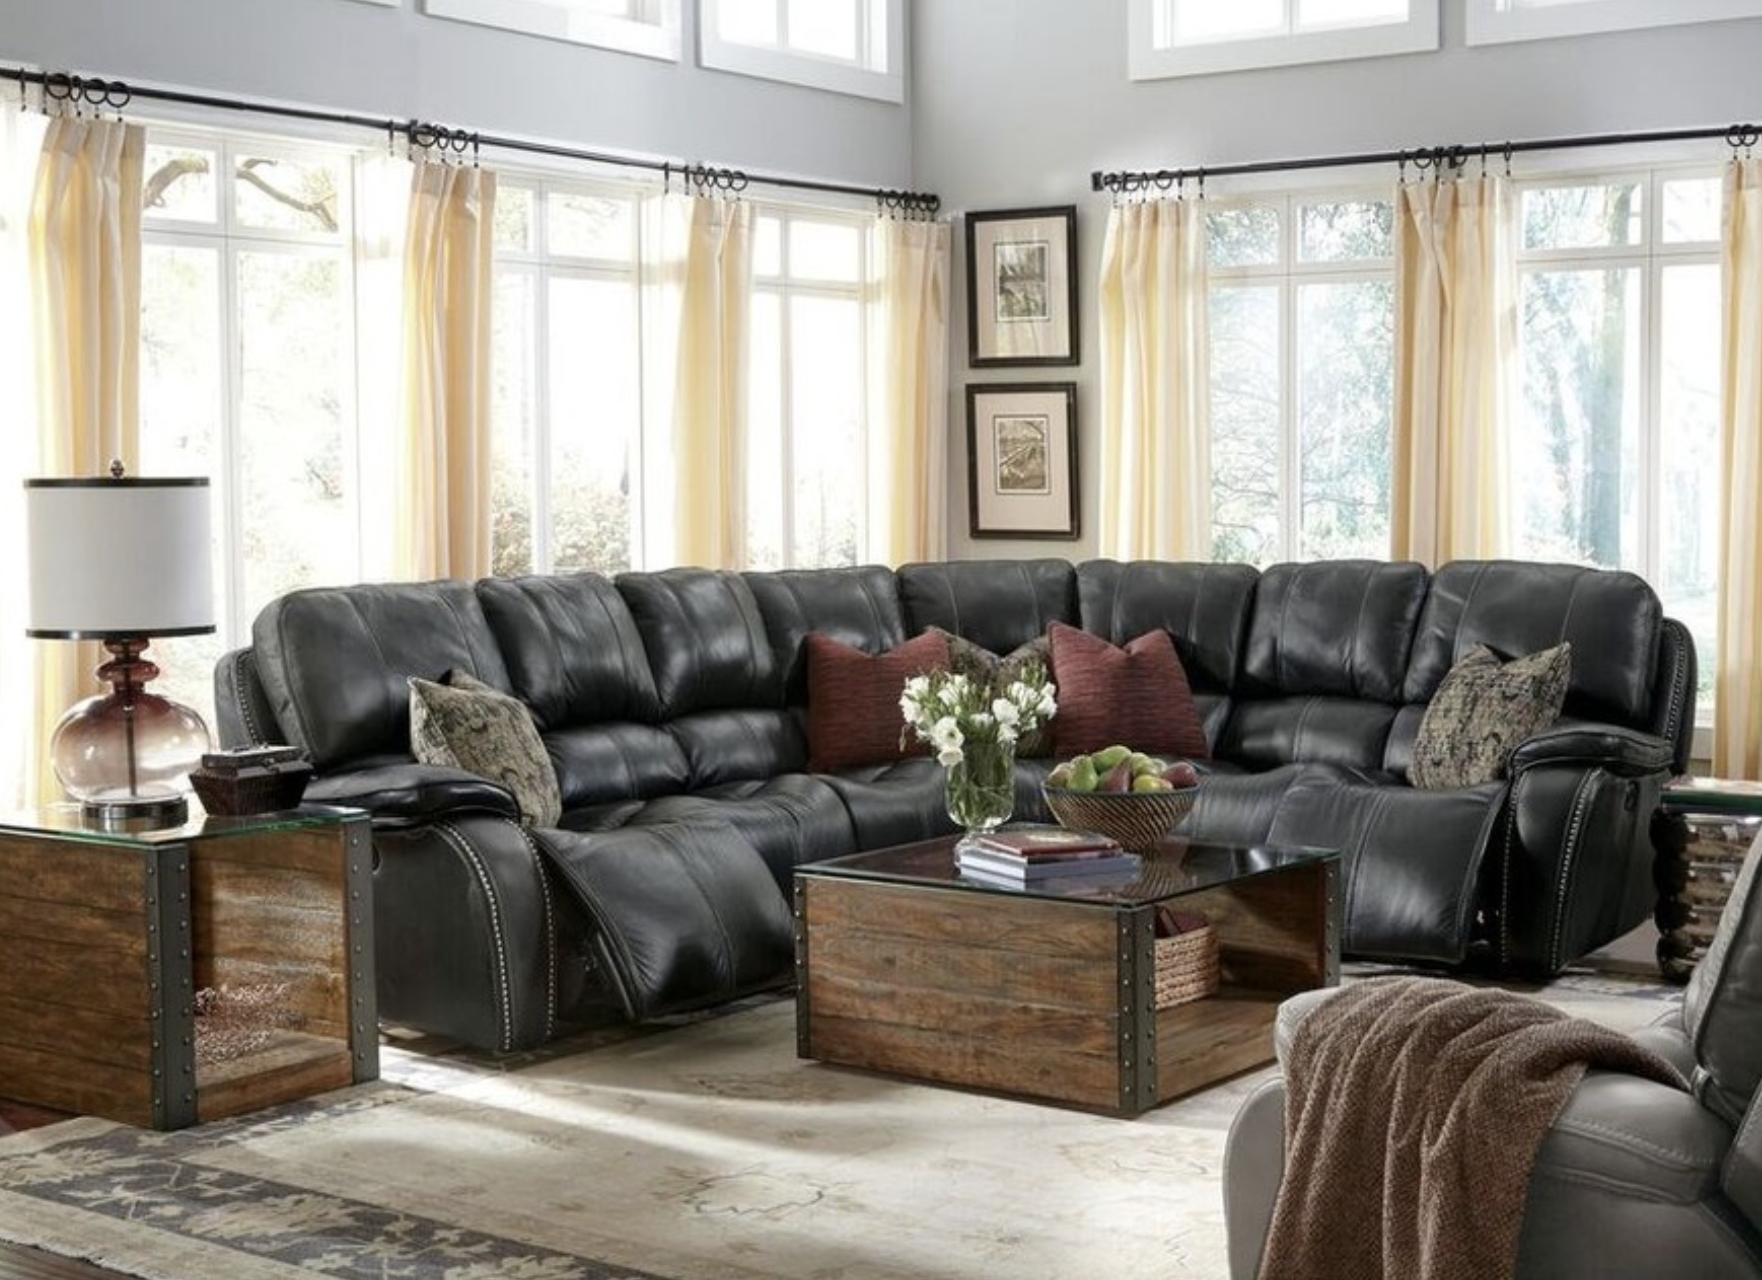 Large Windows And This Sleek Black Leather Sofa Set From Flexsteel Combine Perfectly To Give